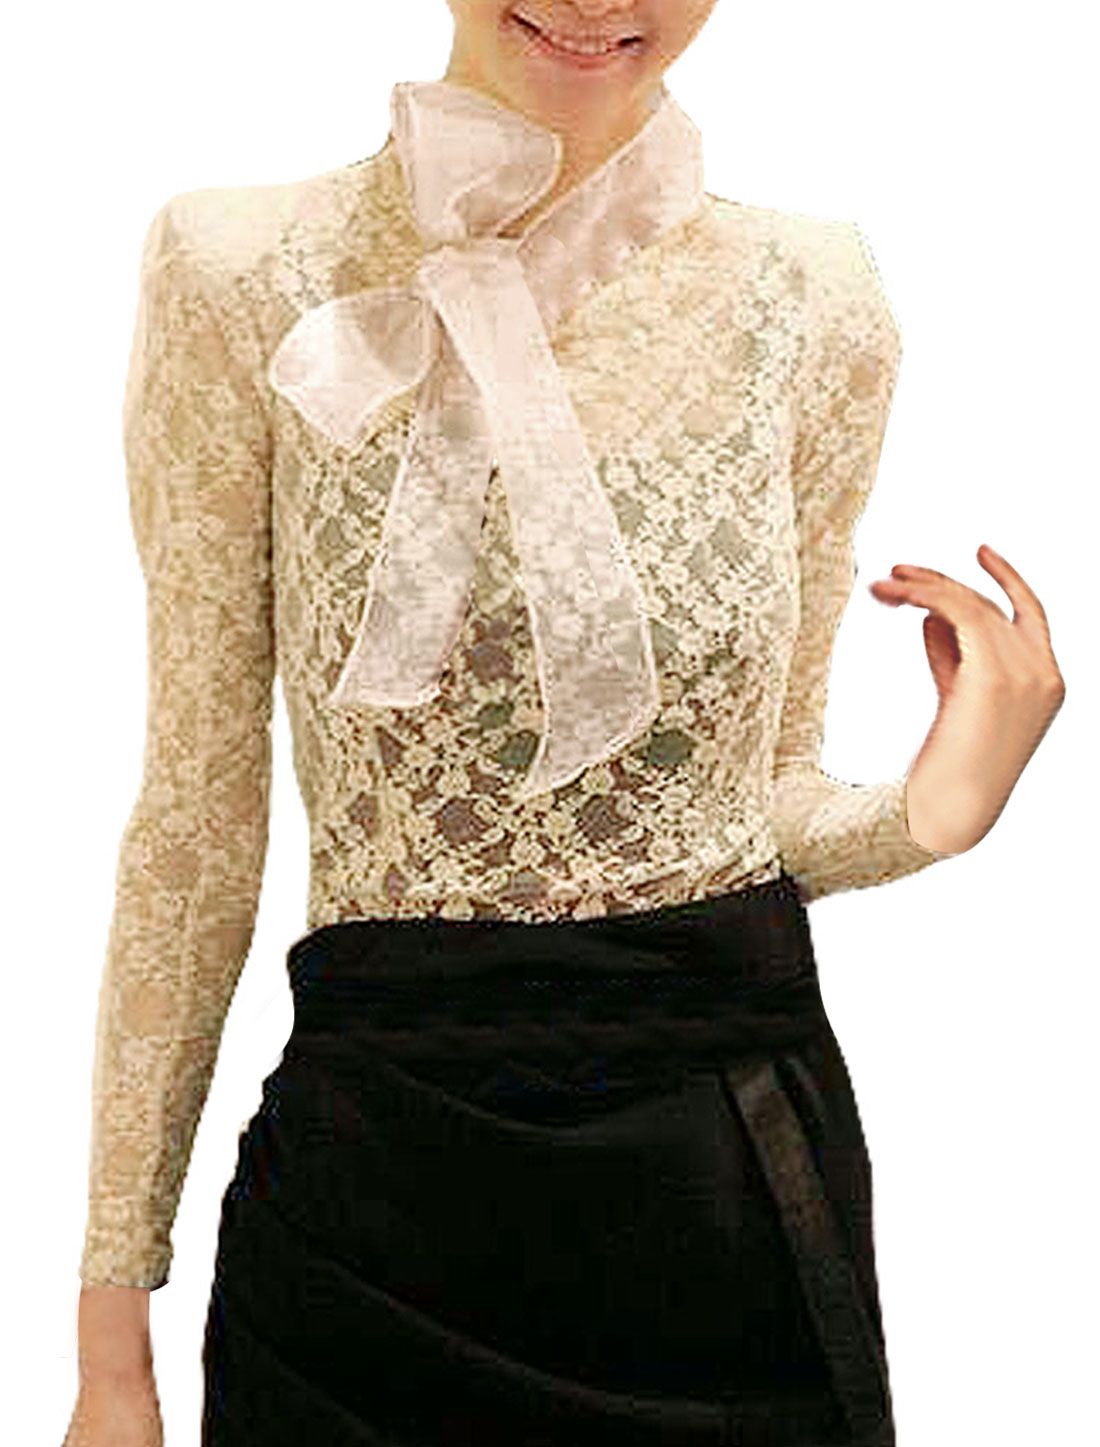 Beige Self Tie Knot Stand Collar Sheer Lace Shirt XS for Women